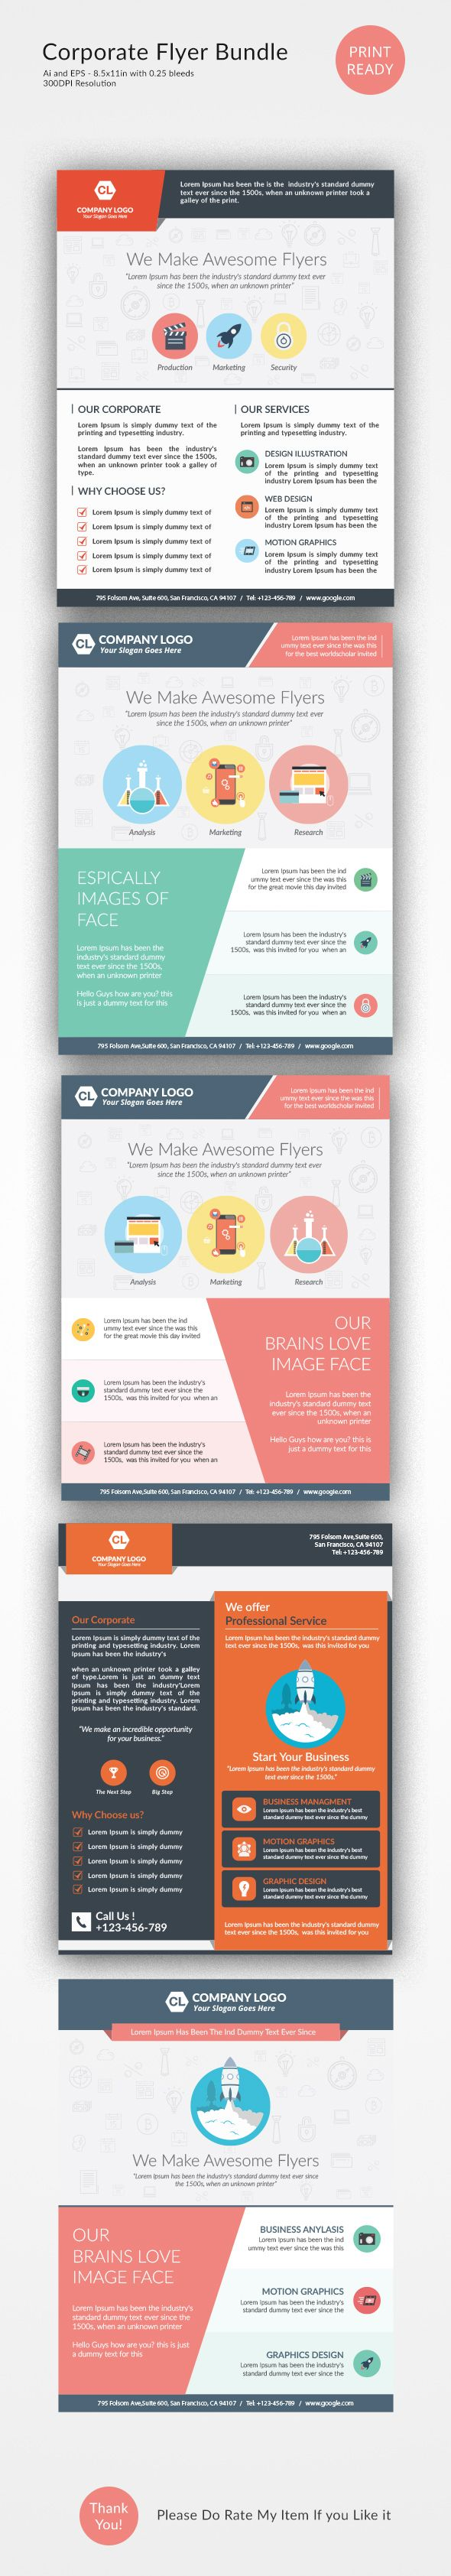 Corporate Flyer Bundle Set of four Corporate Flyer Bundle Flyer is ready to use Marketing, Educational, Financial and other multi purpose Flyer   http://graphicriver.net/item/corporate-flyer-bundle/14492817?ref=ruminated